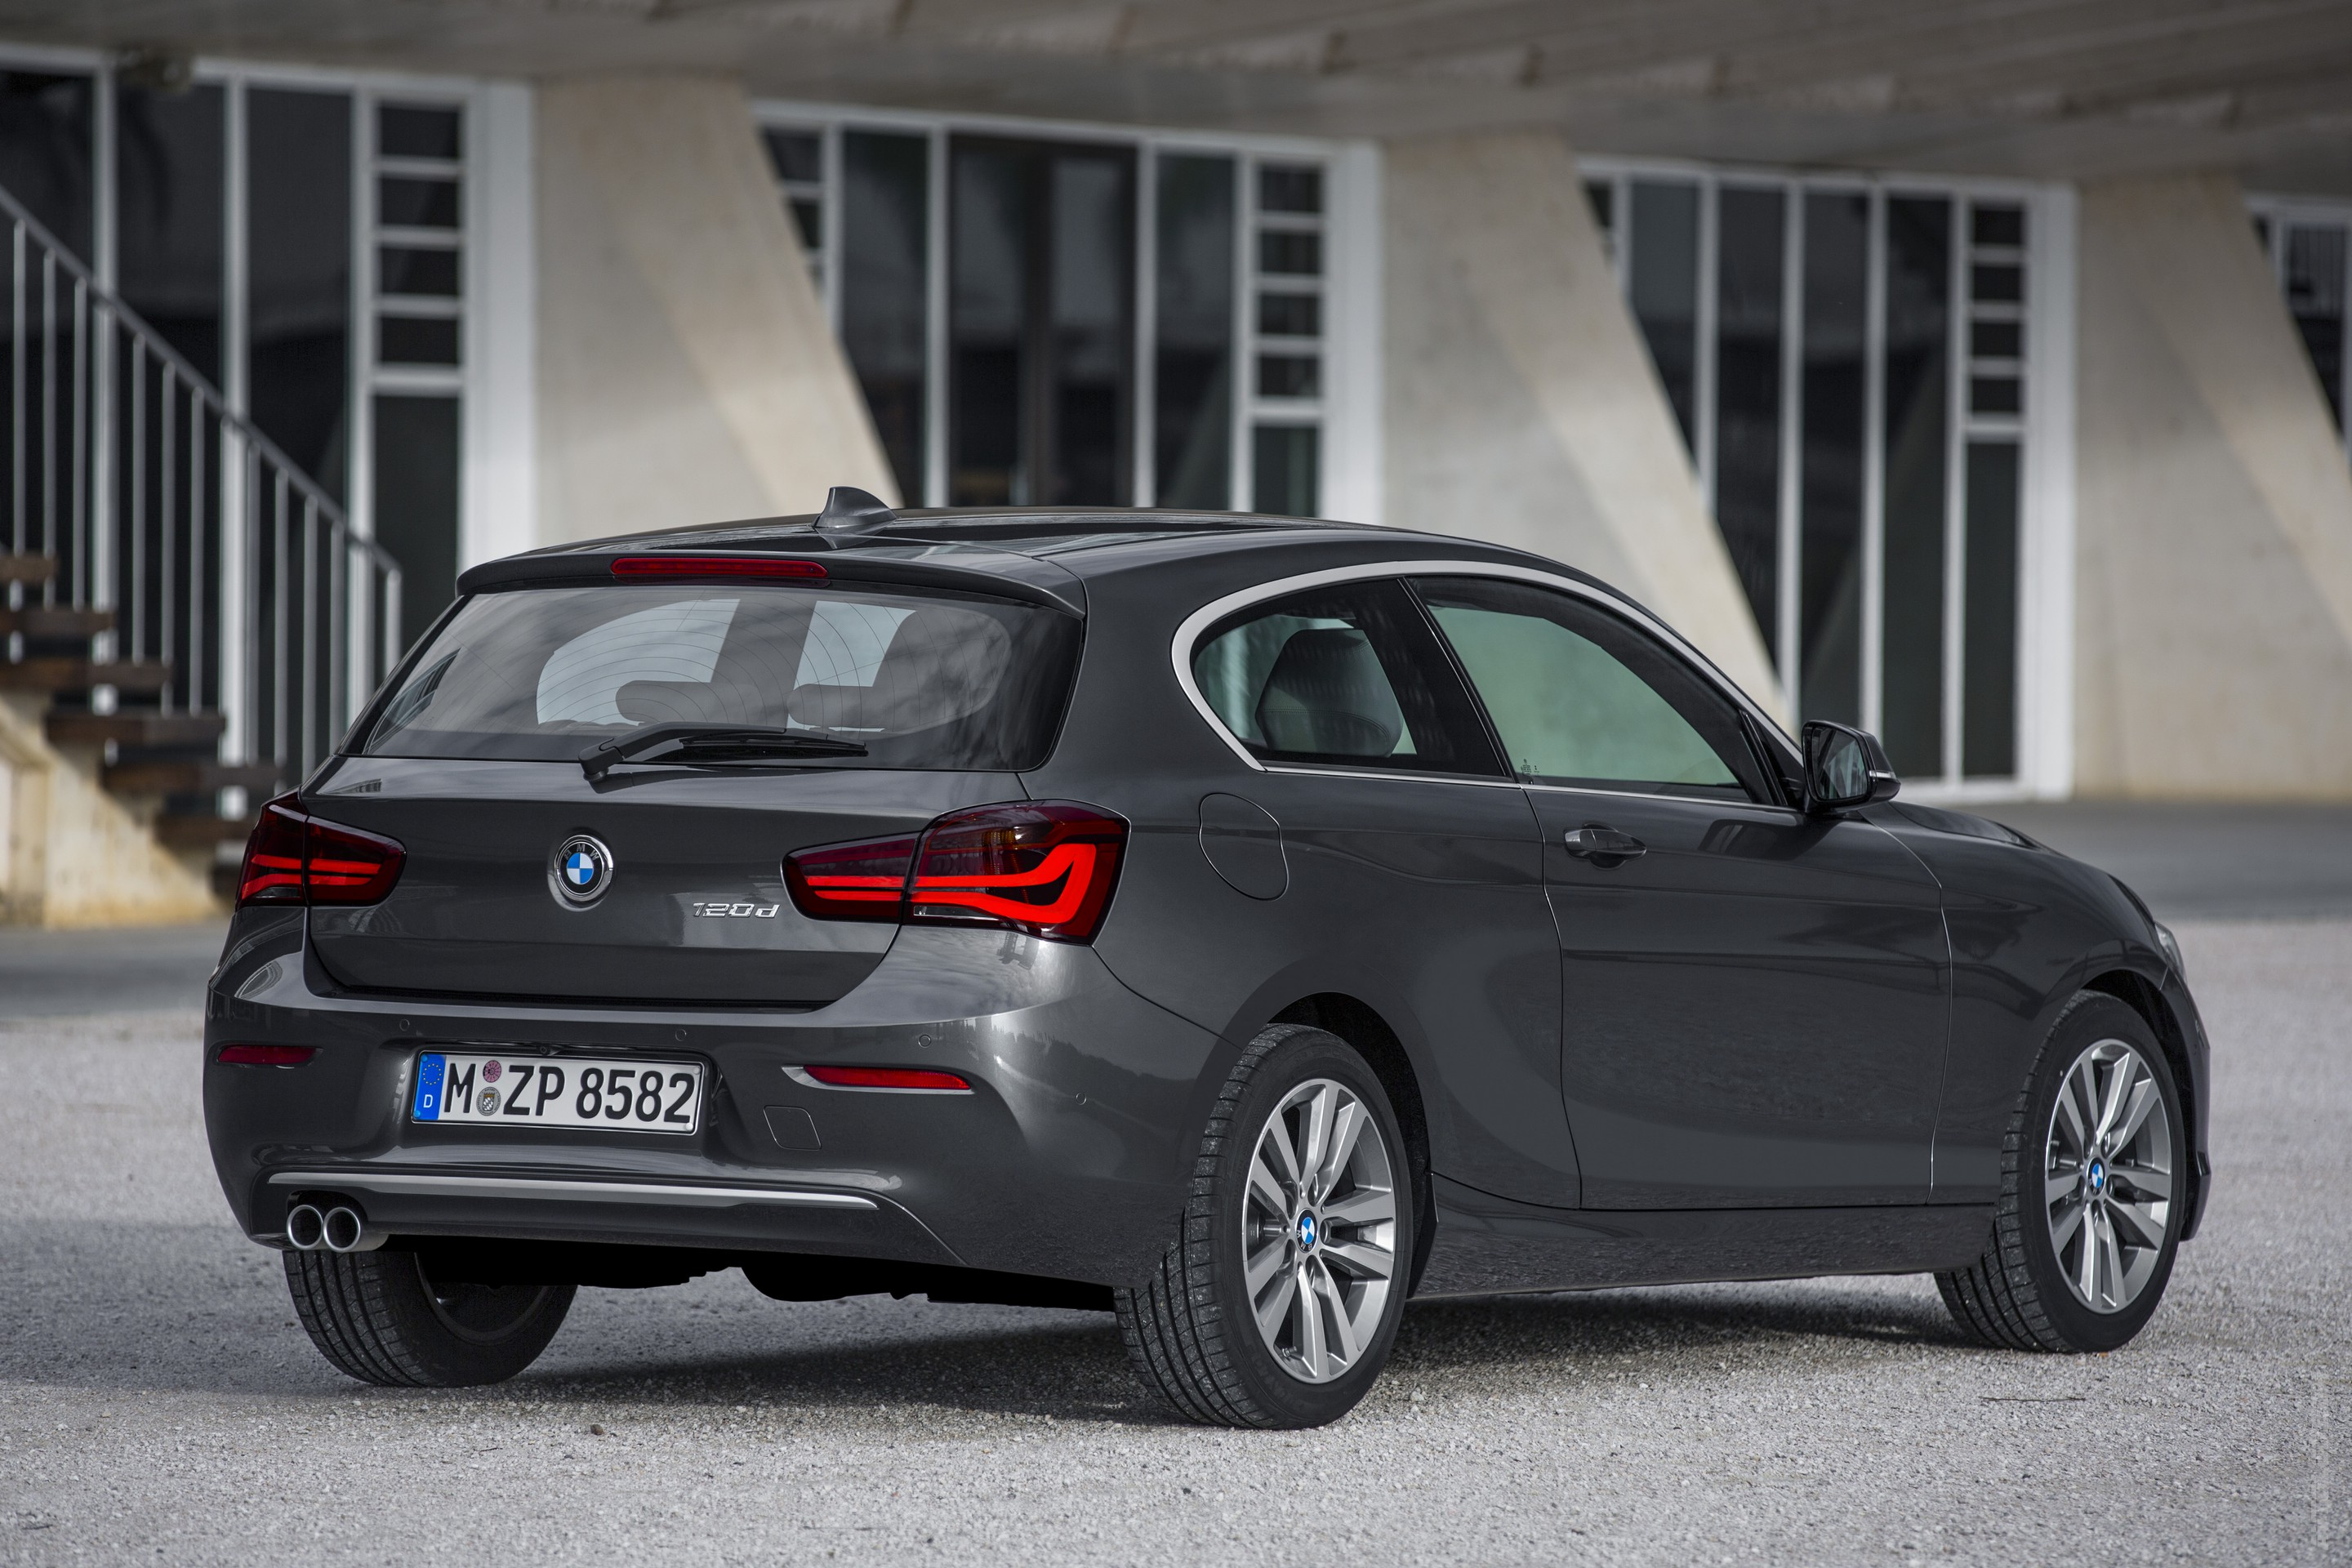 2019 BMW 1 Series 3 door photo - 4